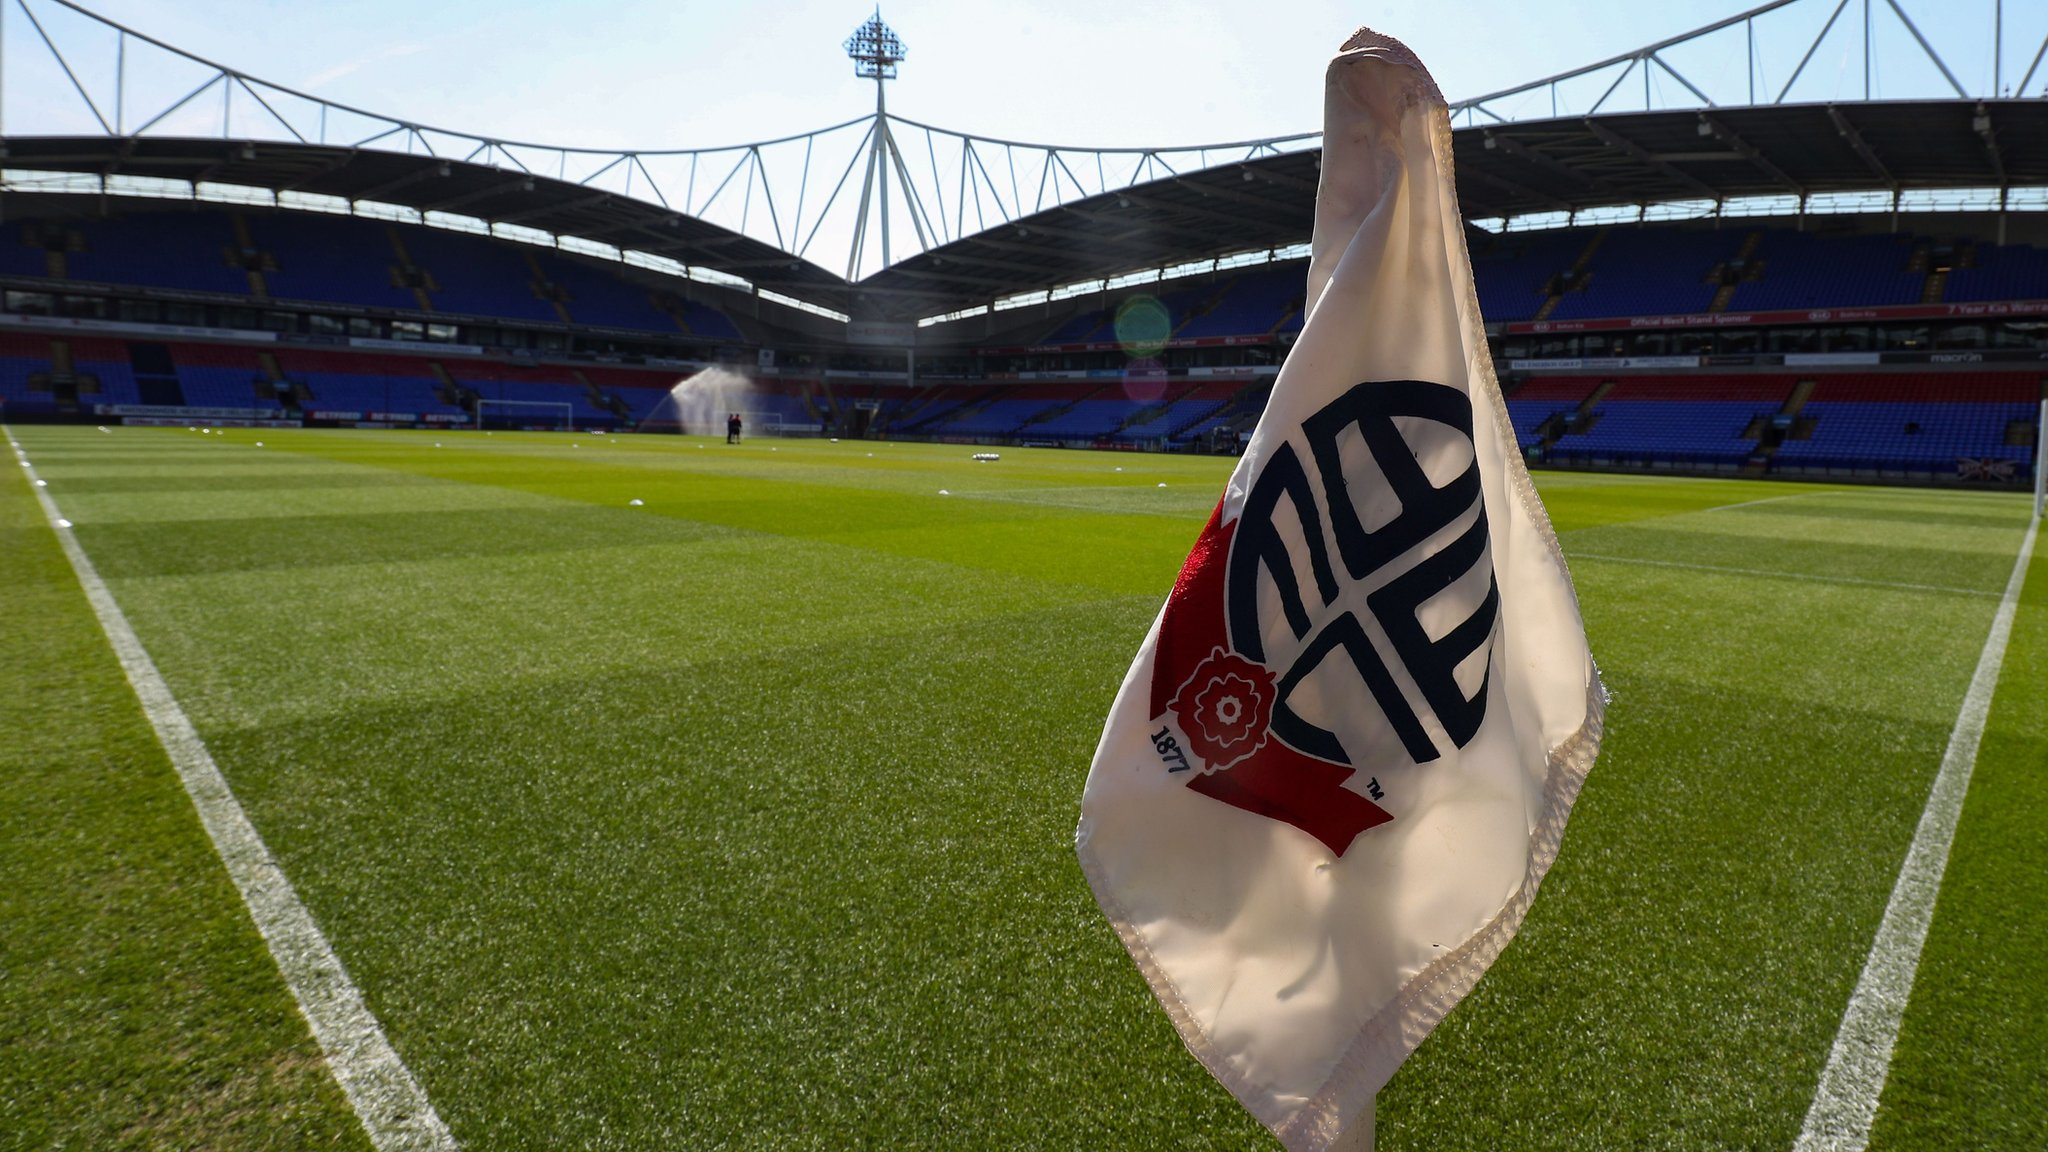 2fc676705 Bolton Wanderers' administrators identify preferred new owner - Bolton  Wanderers' administrators identify a preferred new owner to take over the  League One ...